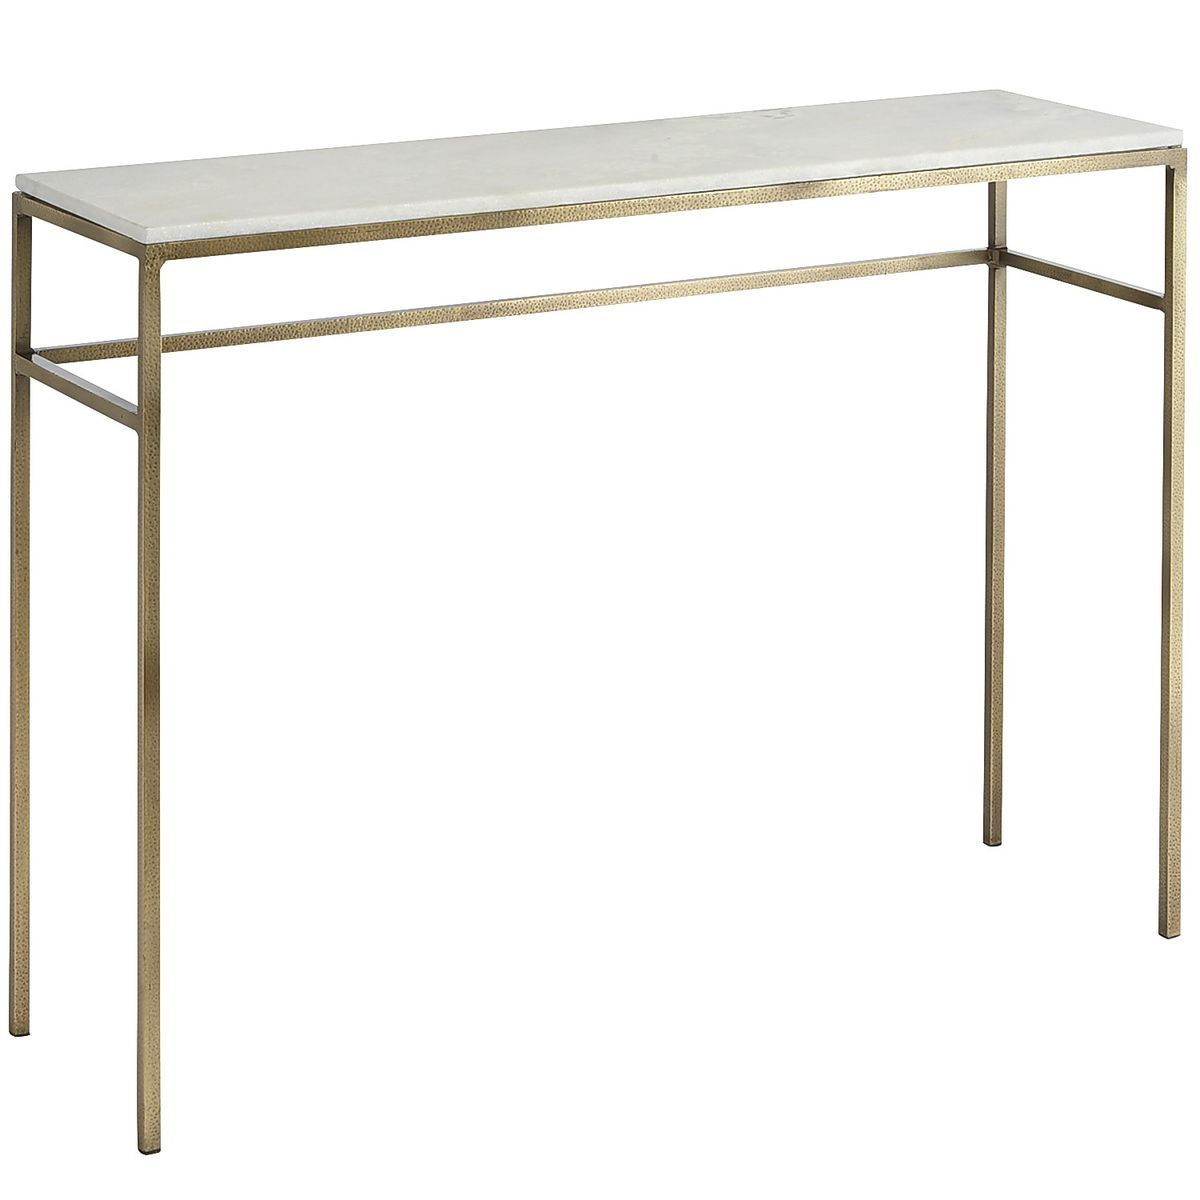 If You're Looking For A Way To Elevate Your Living Space, Ethel Inside Elke Glass Console Tables With Brass Base (View 12 of 30)